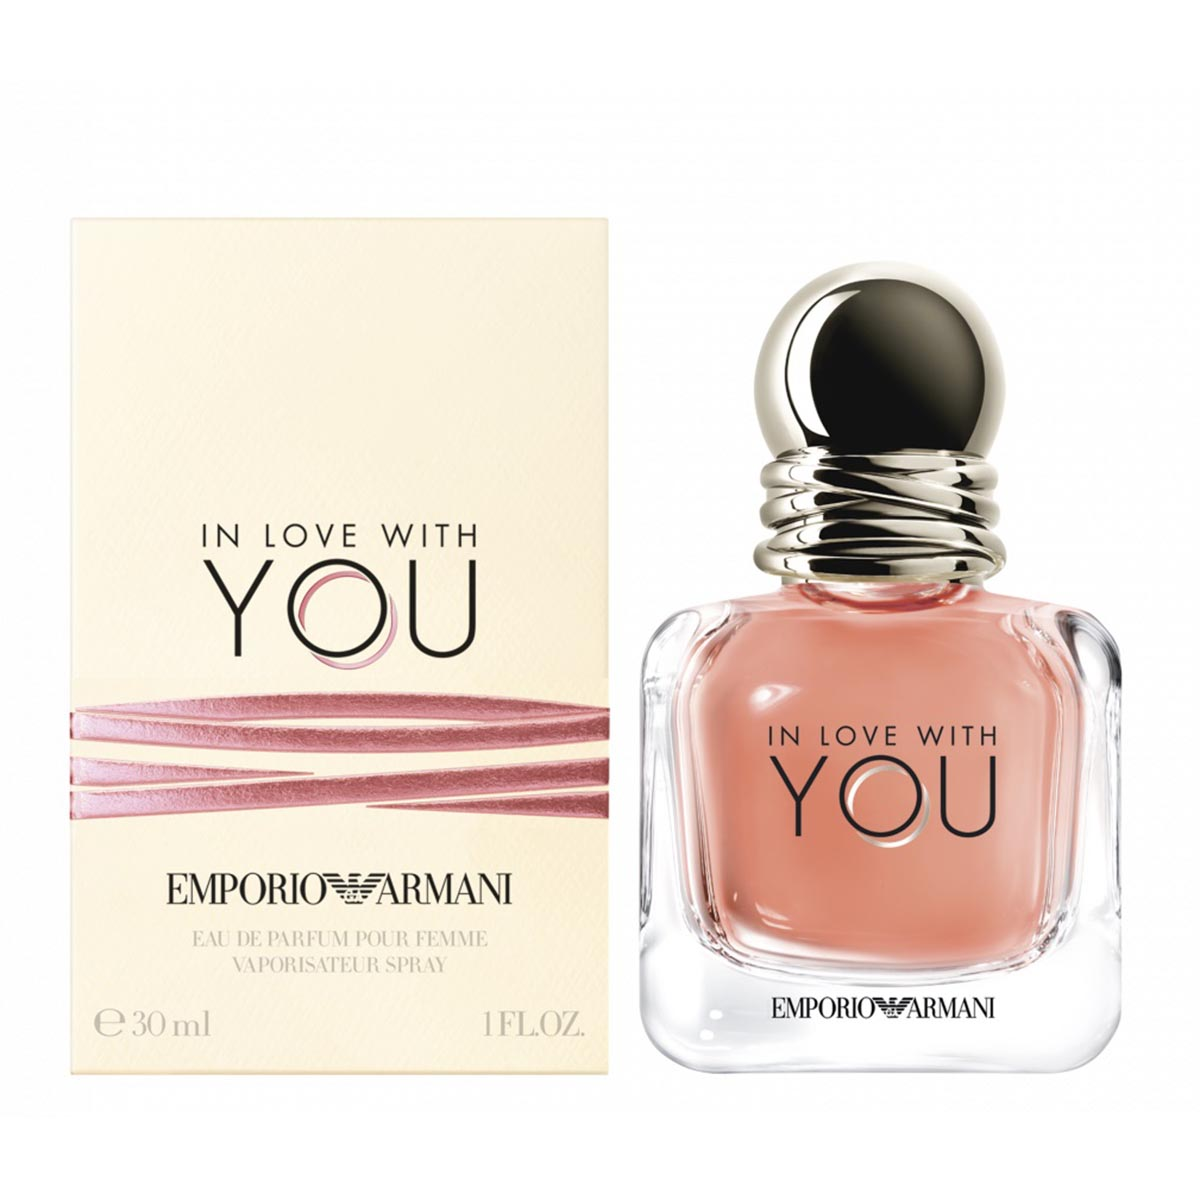 Giorgio armani in love with you eau de parfum 30ml vaporizador